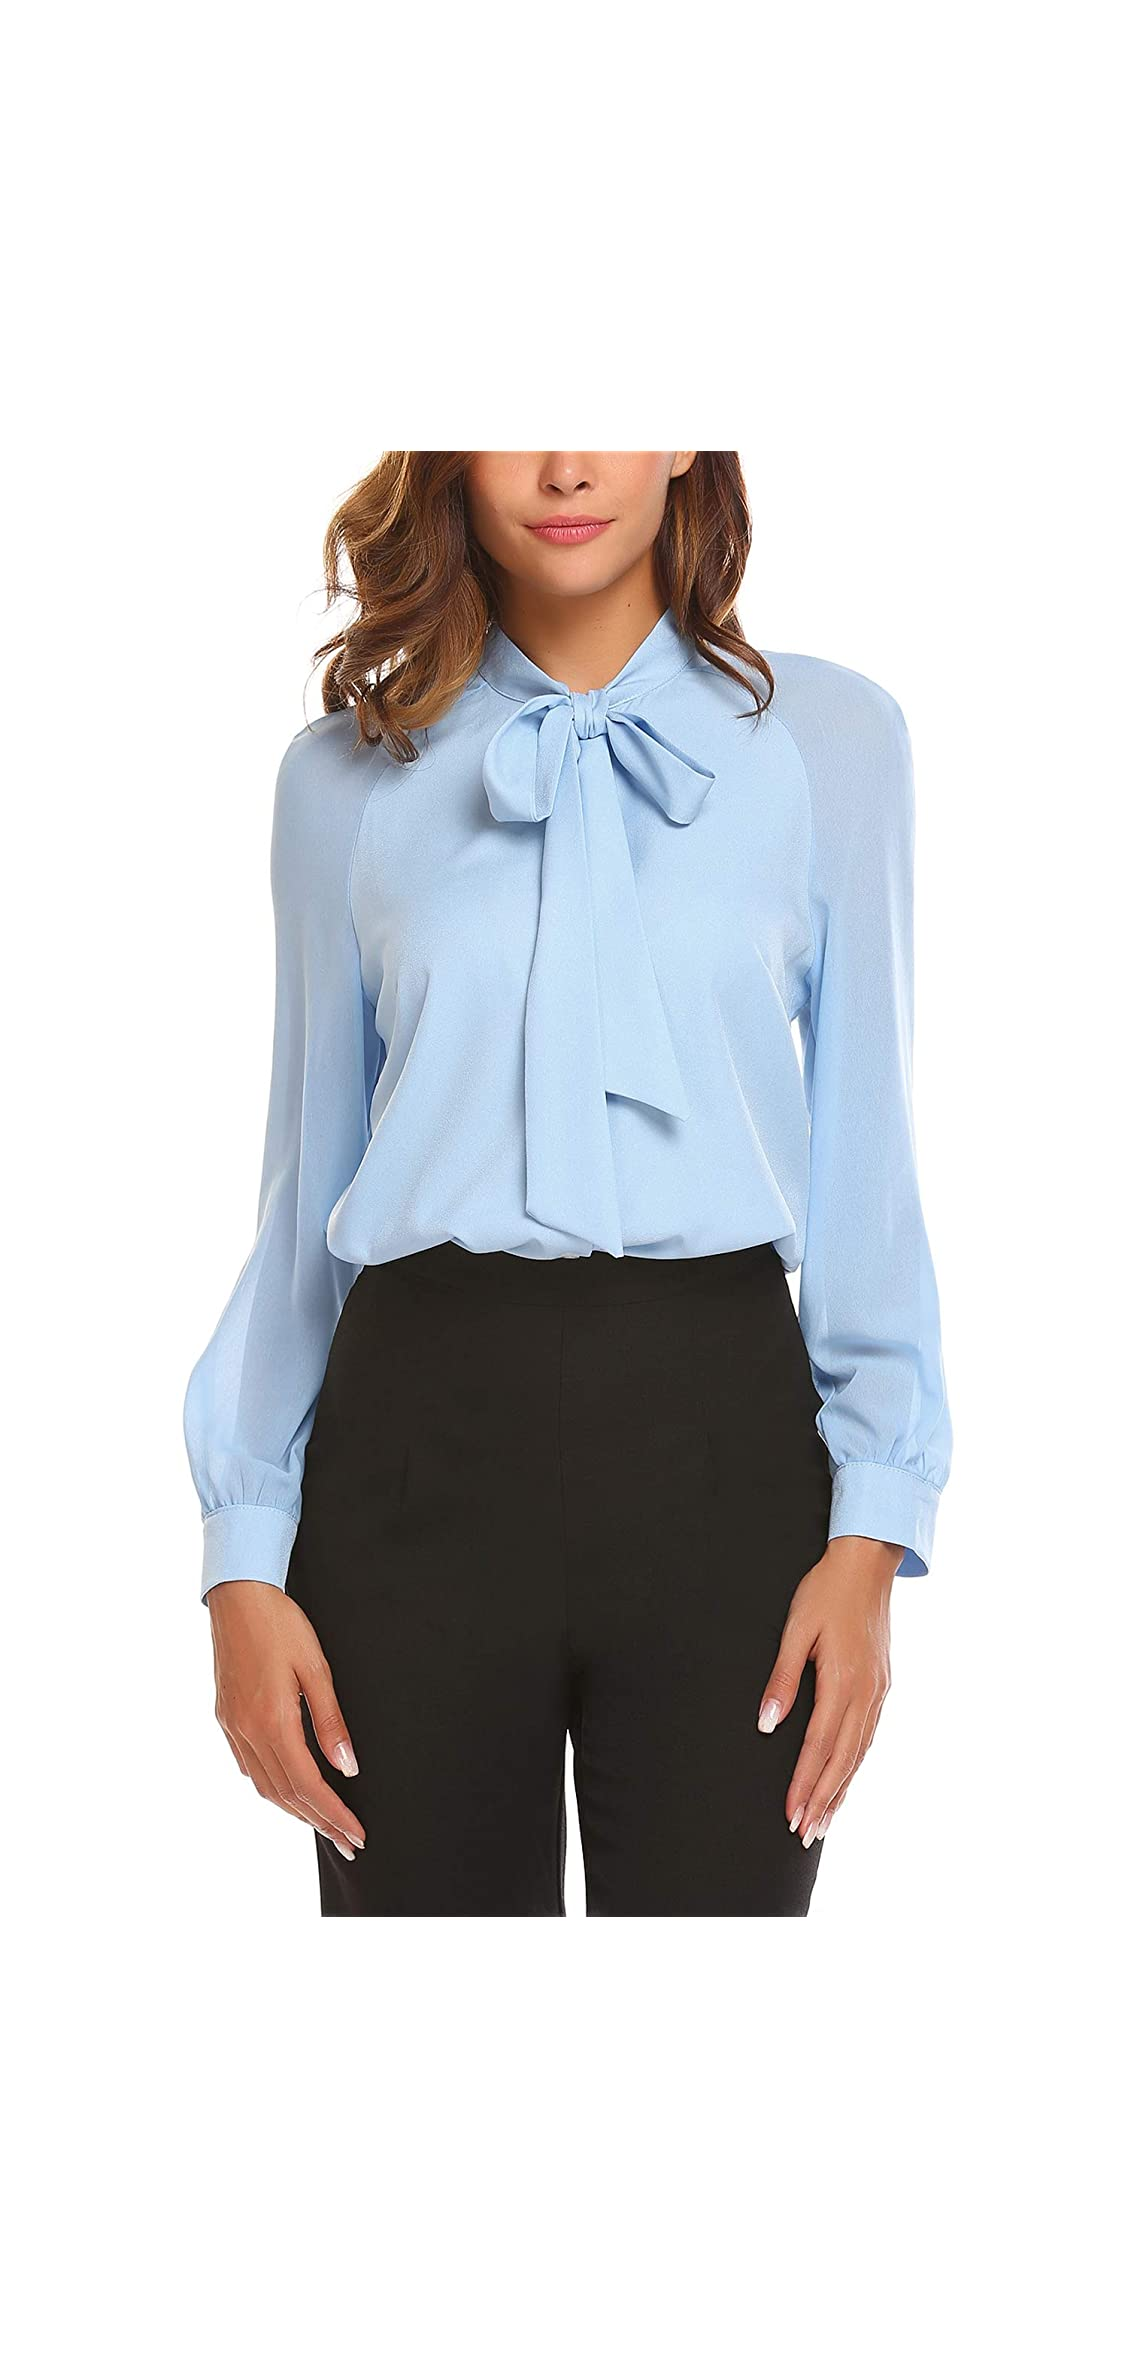 Women Bow Tie Neck Chiffon Blouses Sheer Long Sleeve